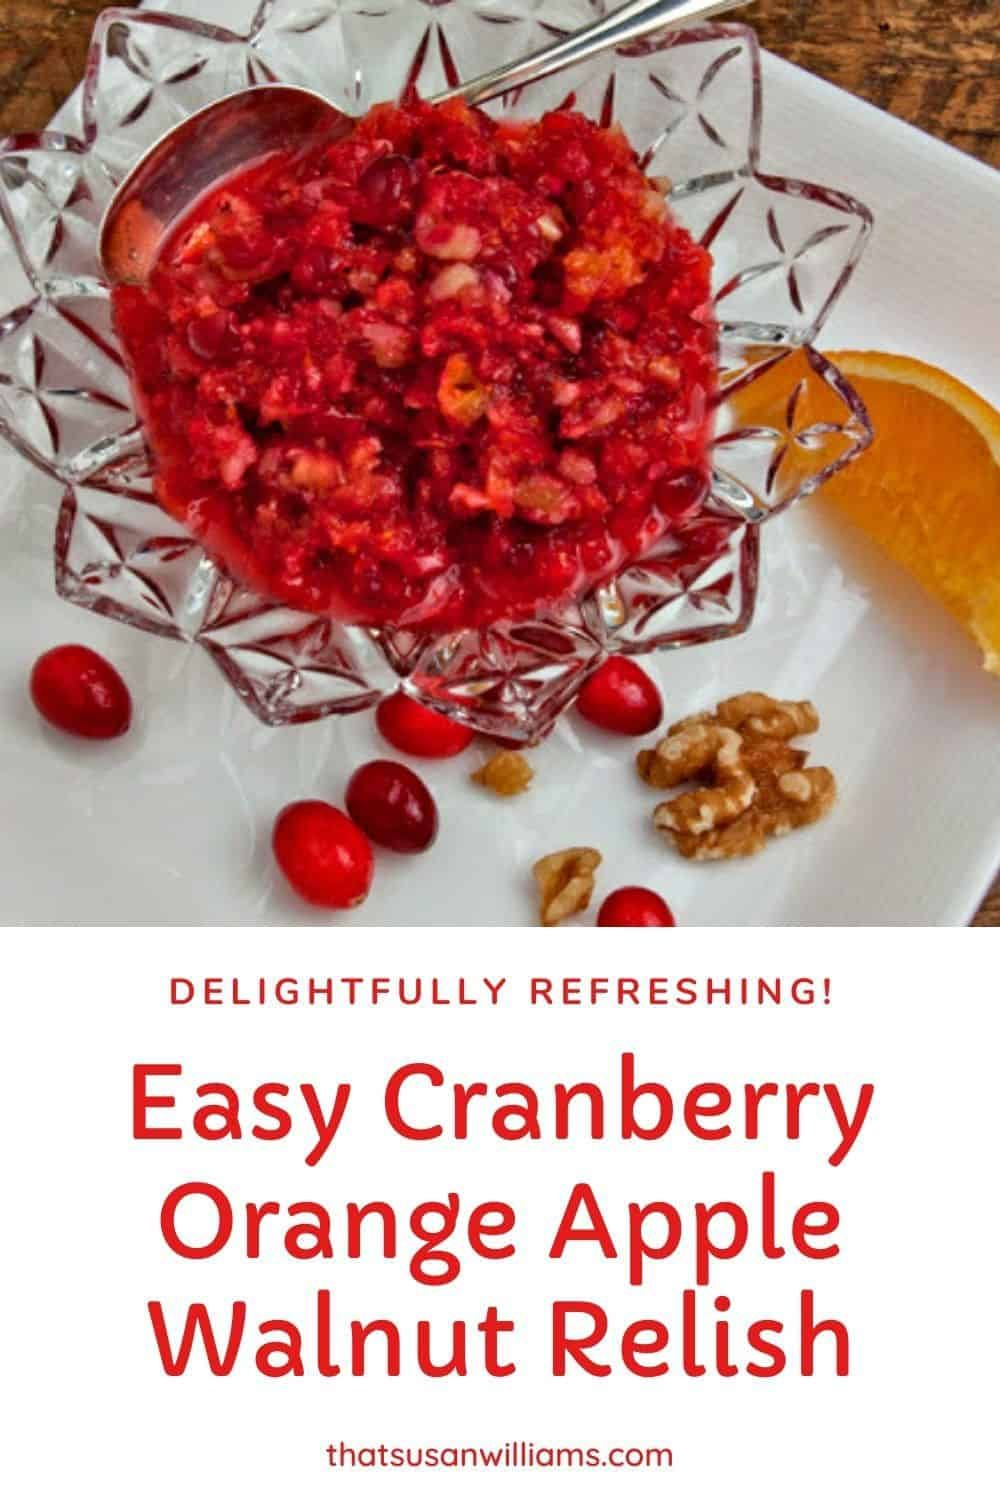 Easy Cranberry Orange Apple Walnut Relish